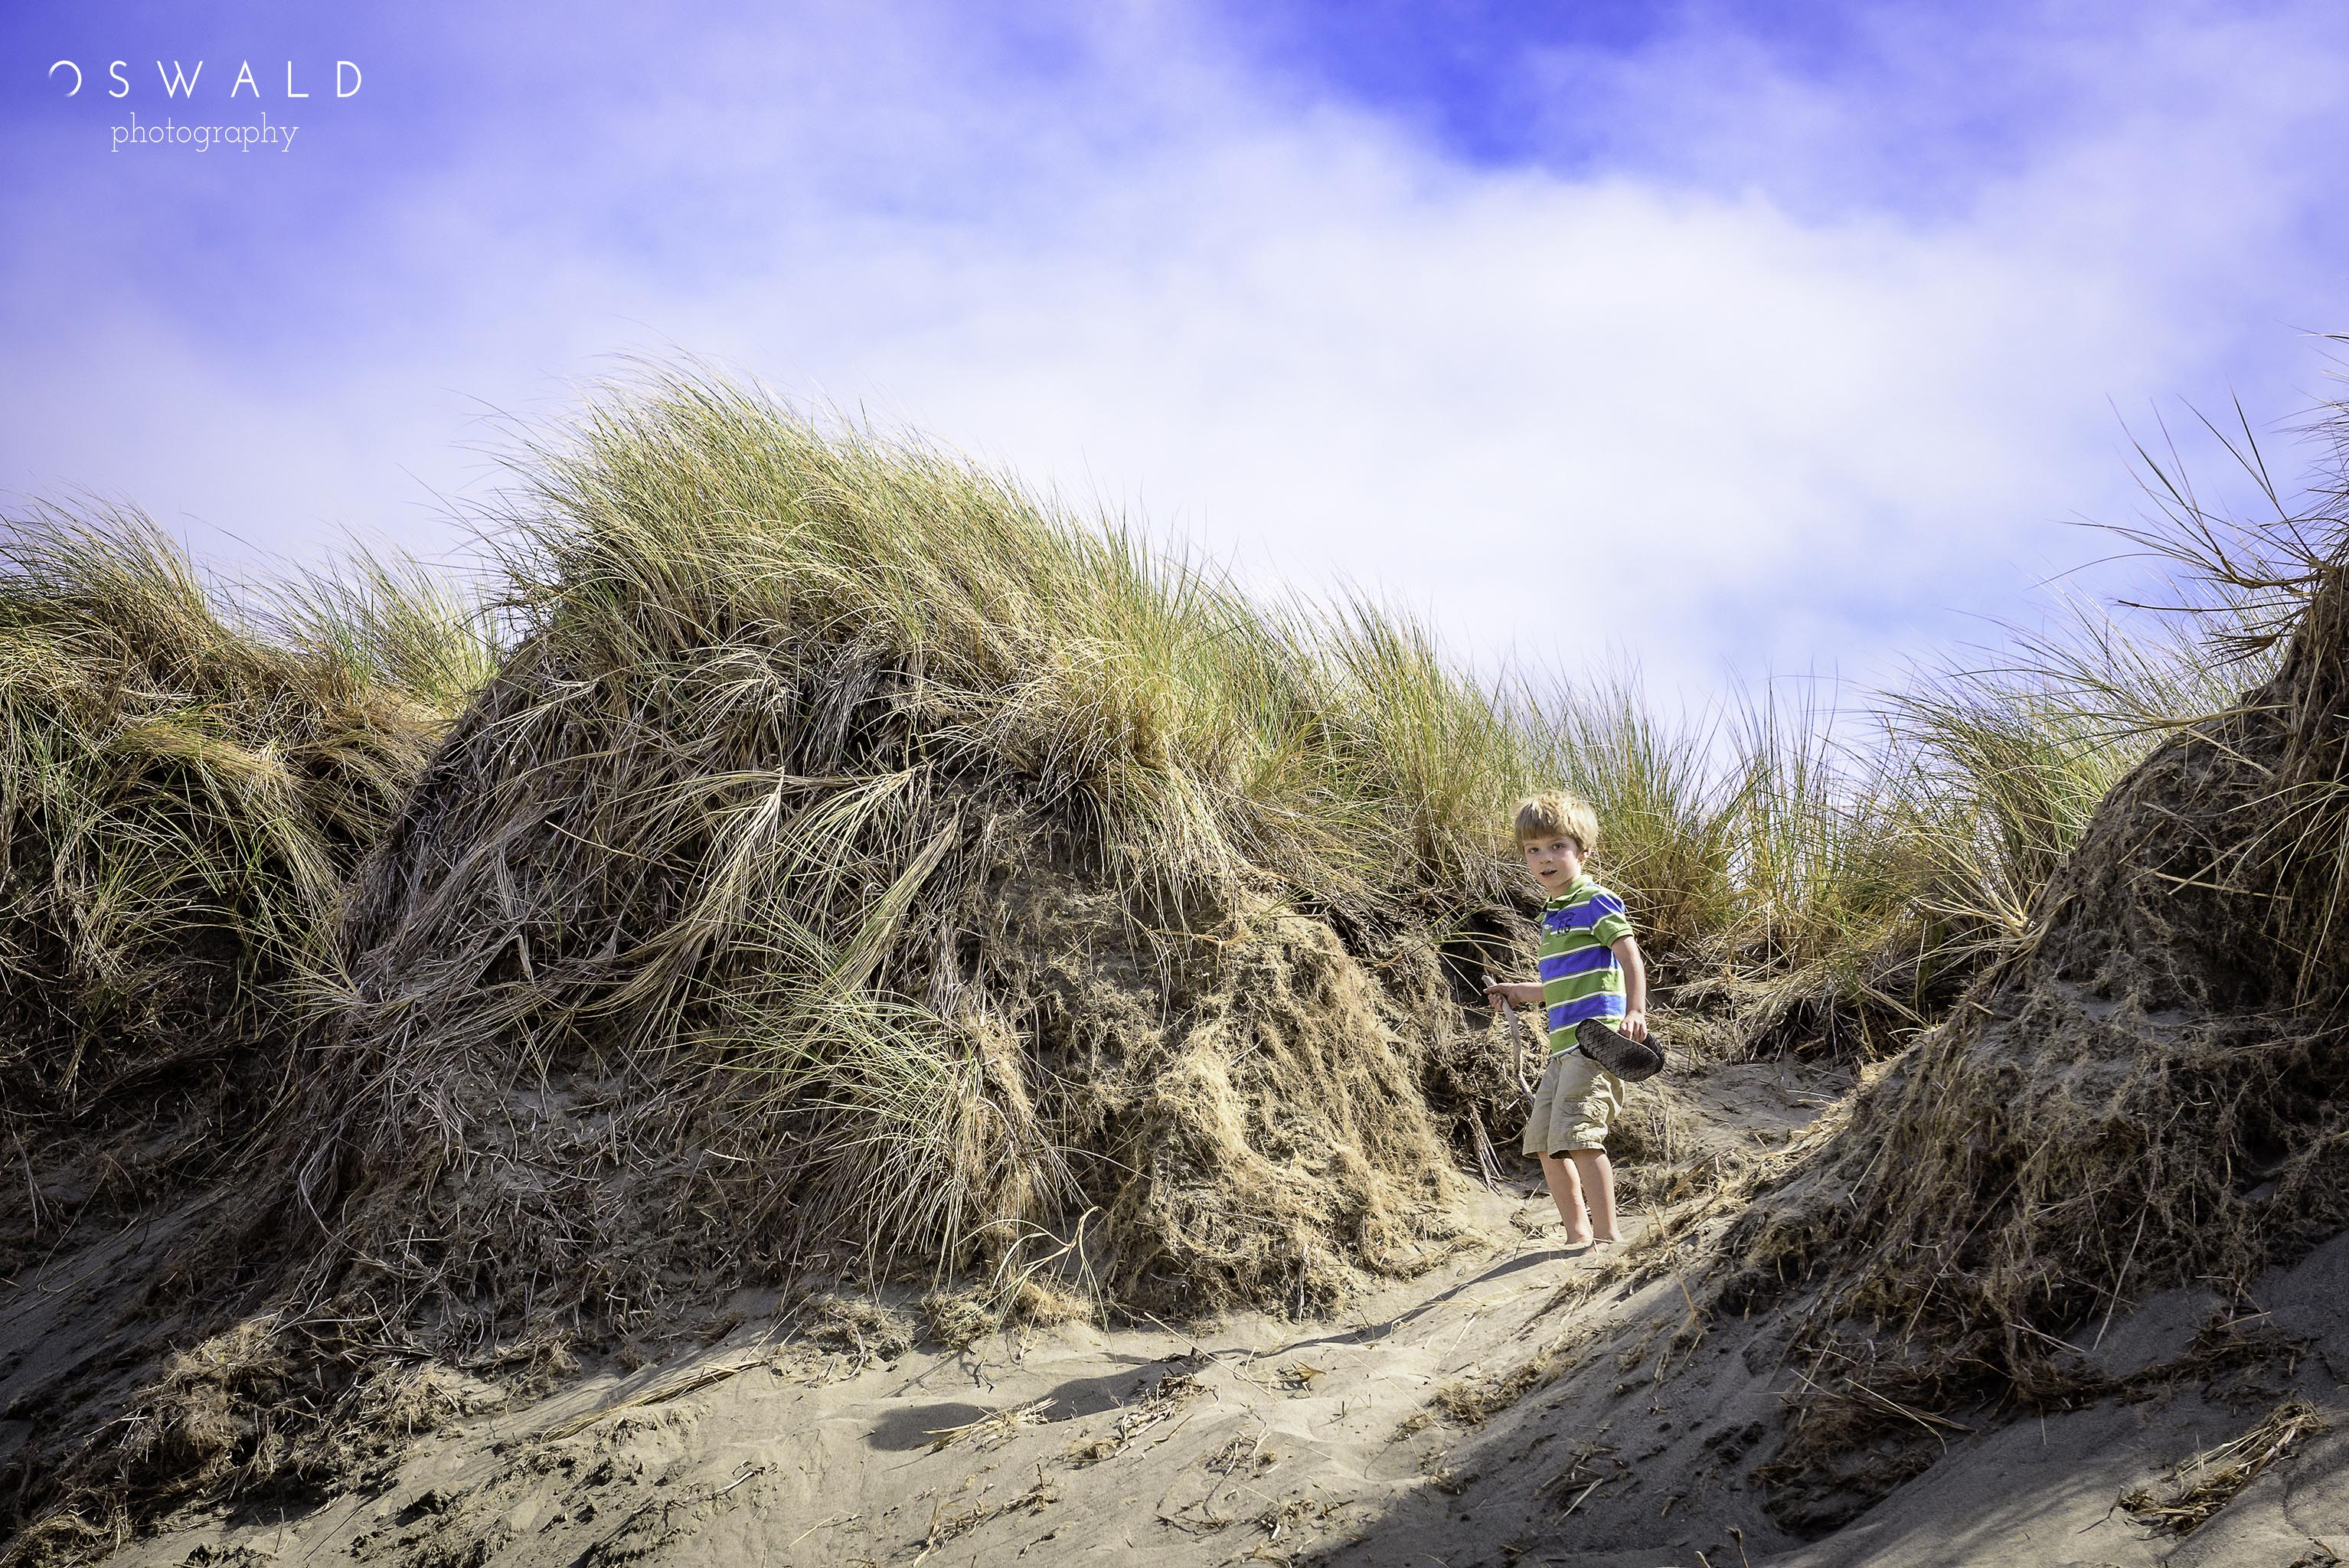 A young boy crosses over the tall grasses of coastal sand dunes at Bodega Bay in Northern California.